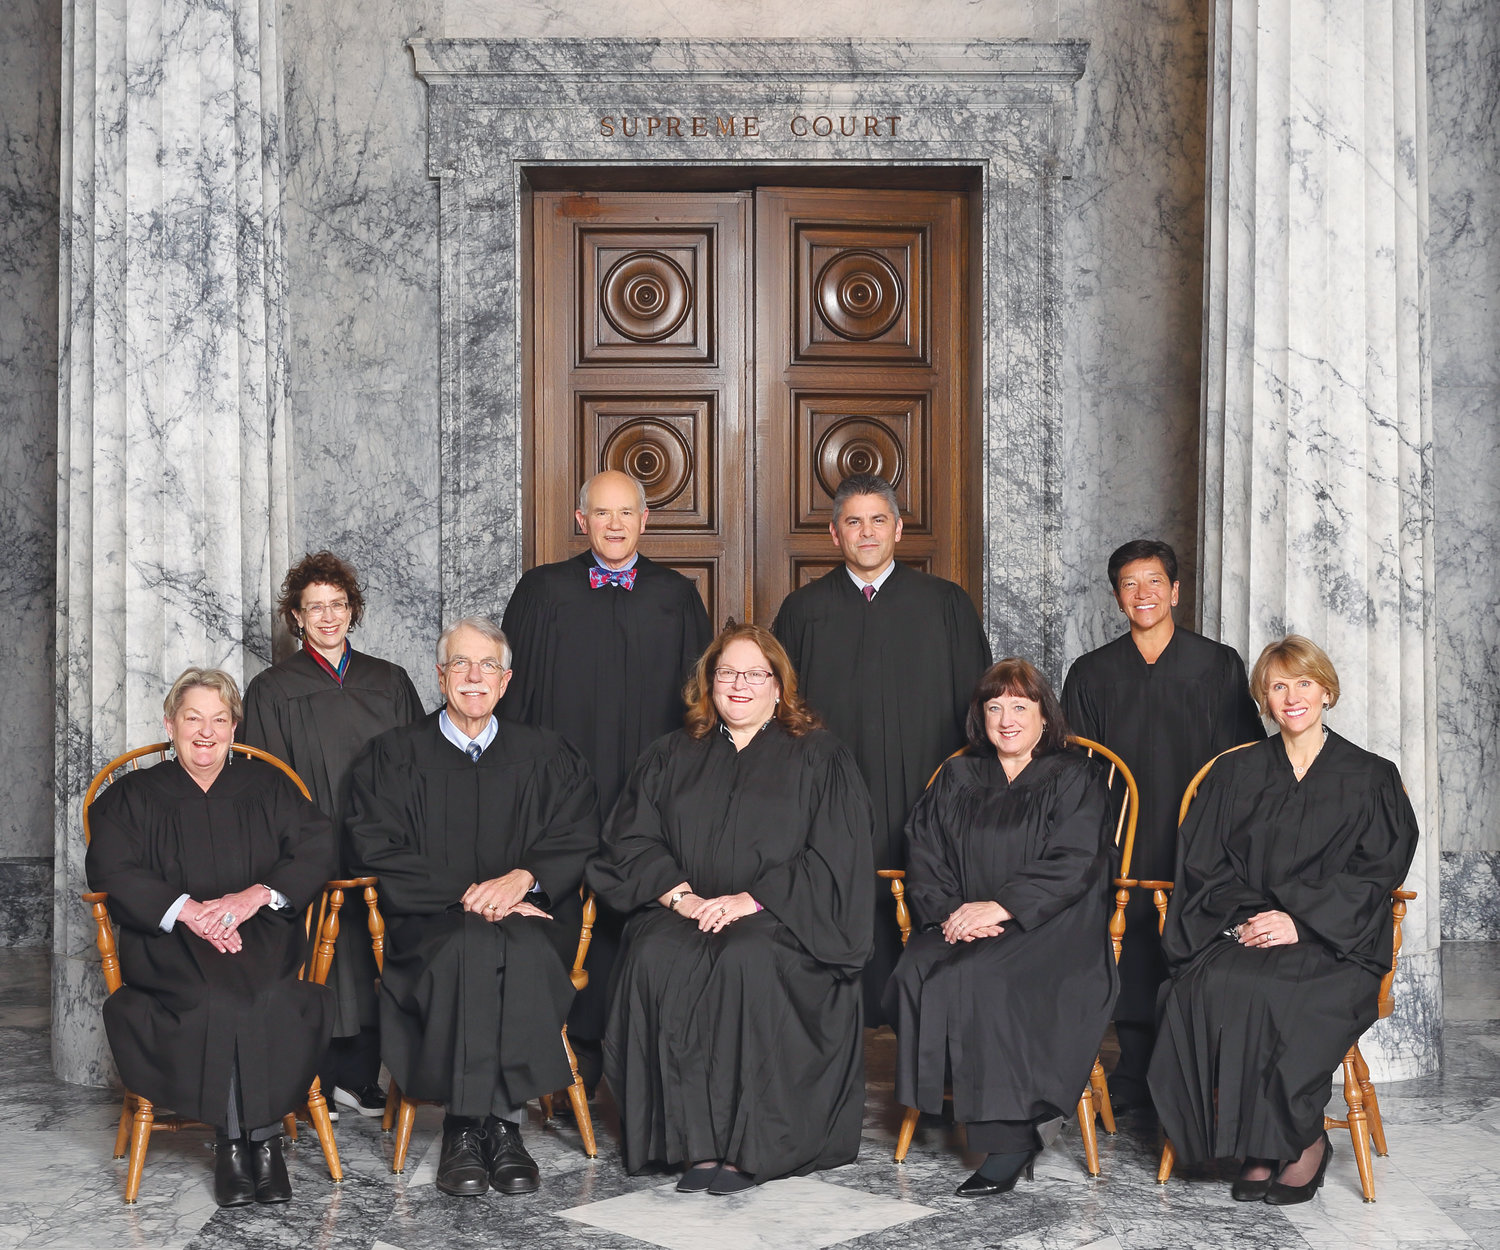 Chief Justice Fairhurst and Associate Justices Charles Johnson, Barbara Madsen, Susan Owens, Debra Stephens, Charles Wiggins, Steven González, Sheryl Gordon McCloud and Mary Yu will hear three cases at the Jefferson County courthouse May 14.